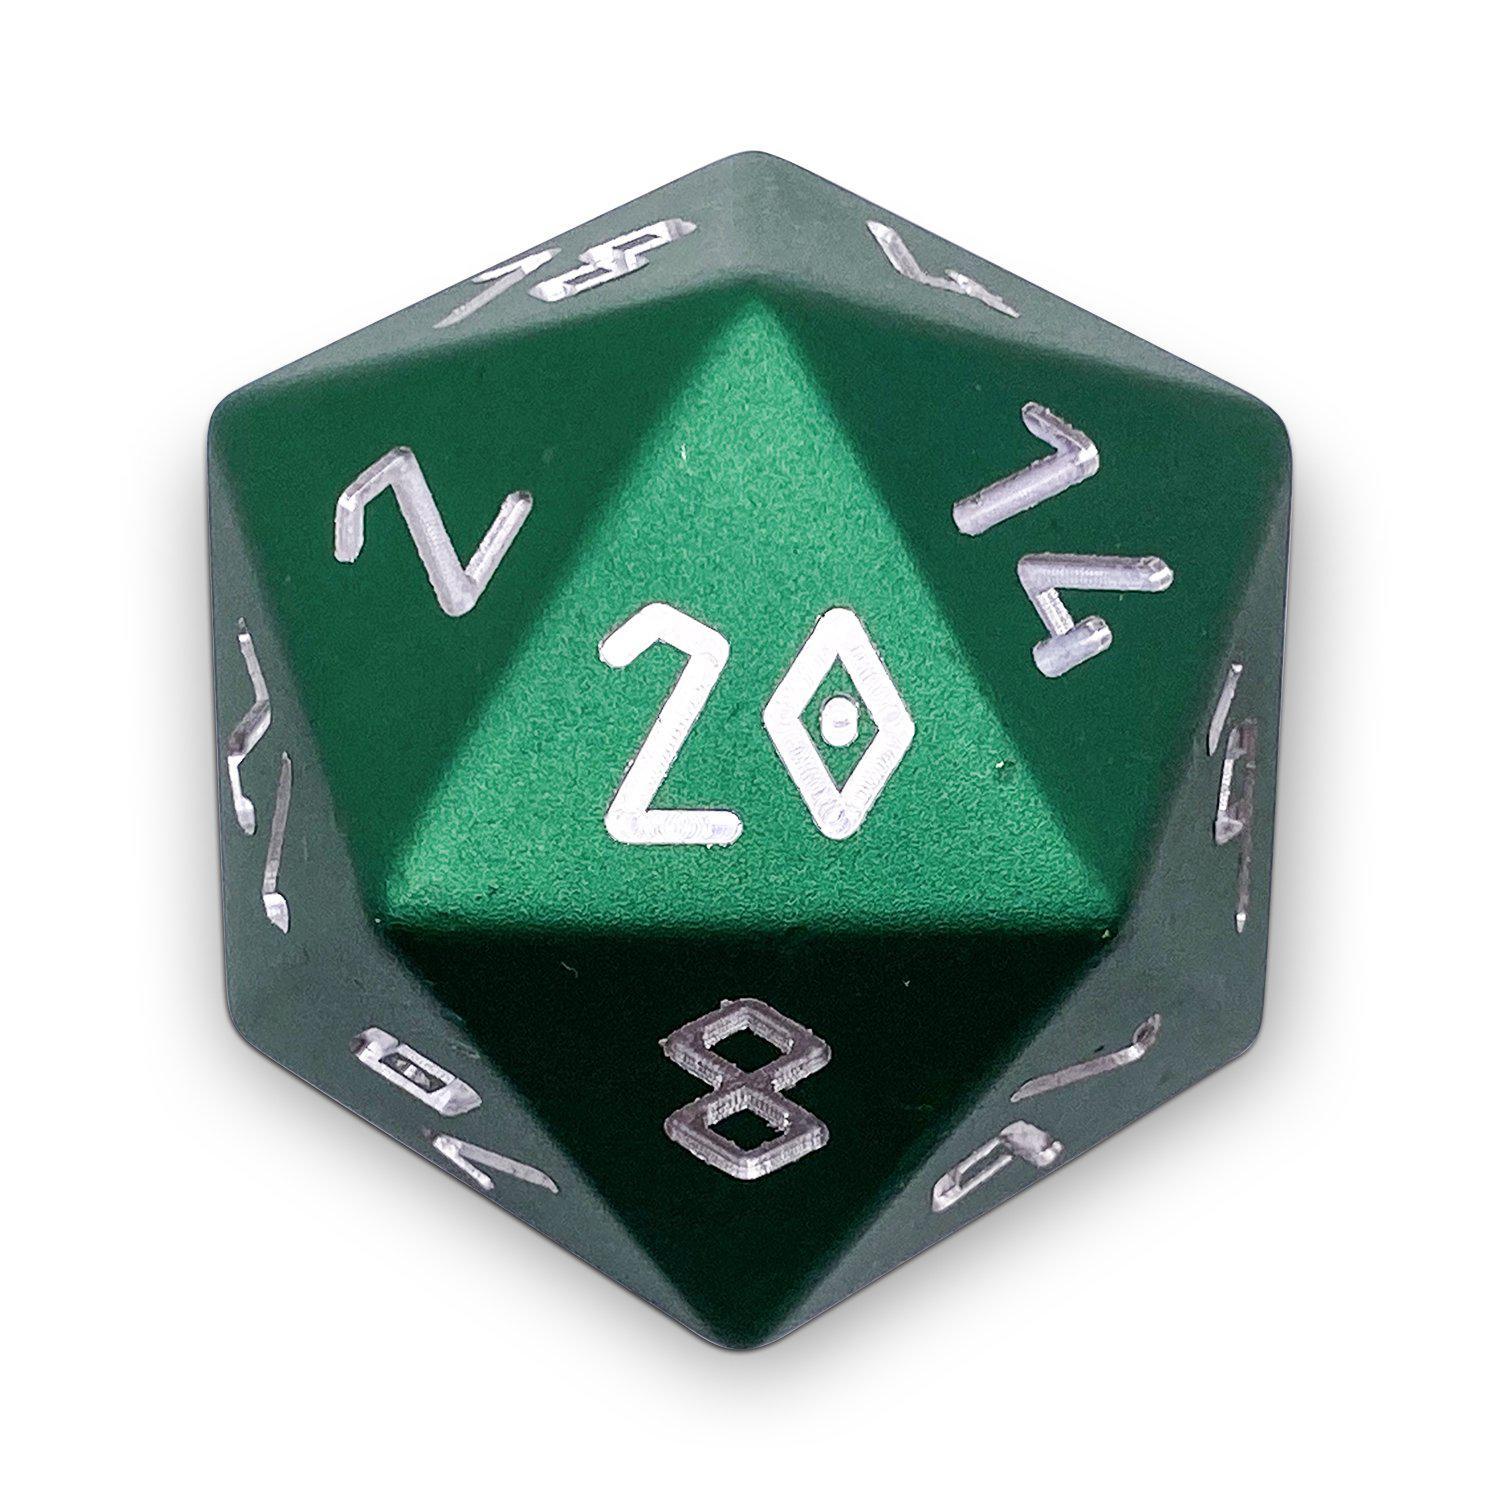 Druid Green - Precision Boulder® 55mm D20 6063 Aircraft Grade Aluminum Metal Die